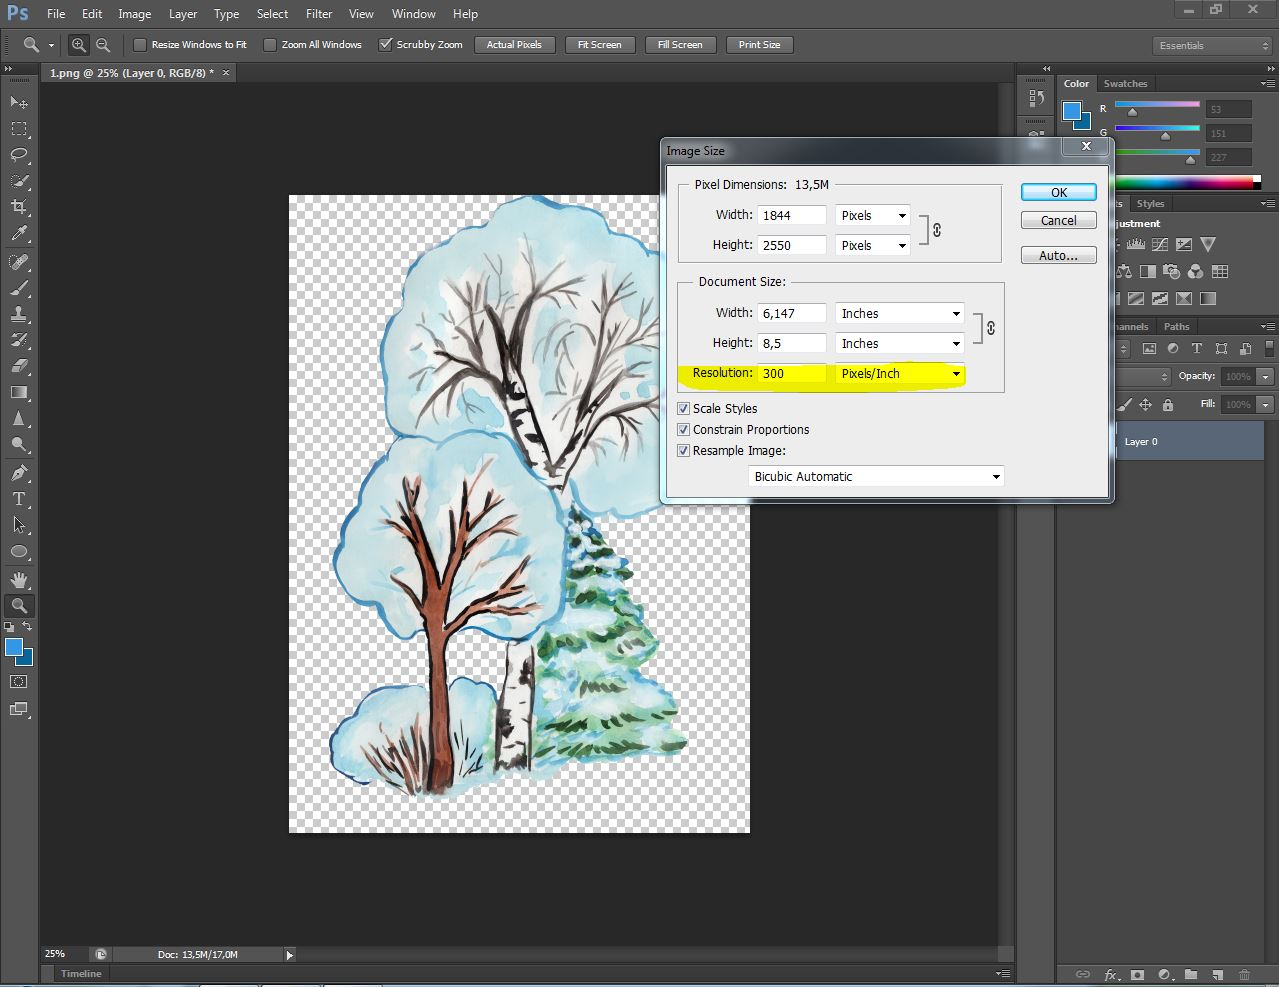 Christmas clipart, winter forest trees with Santa Claus example image 6